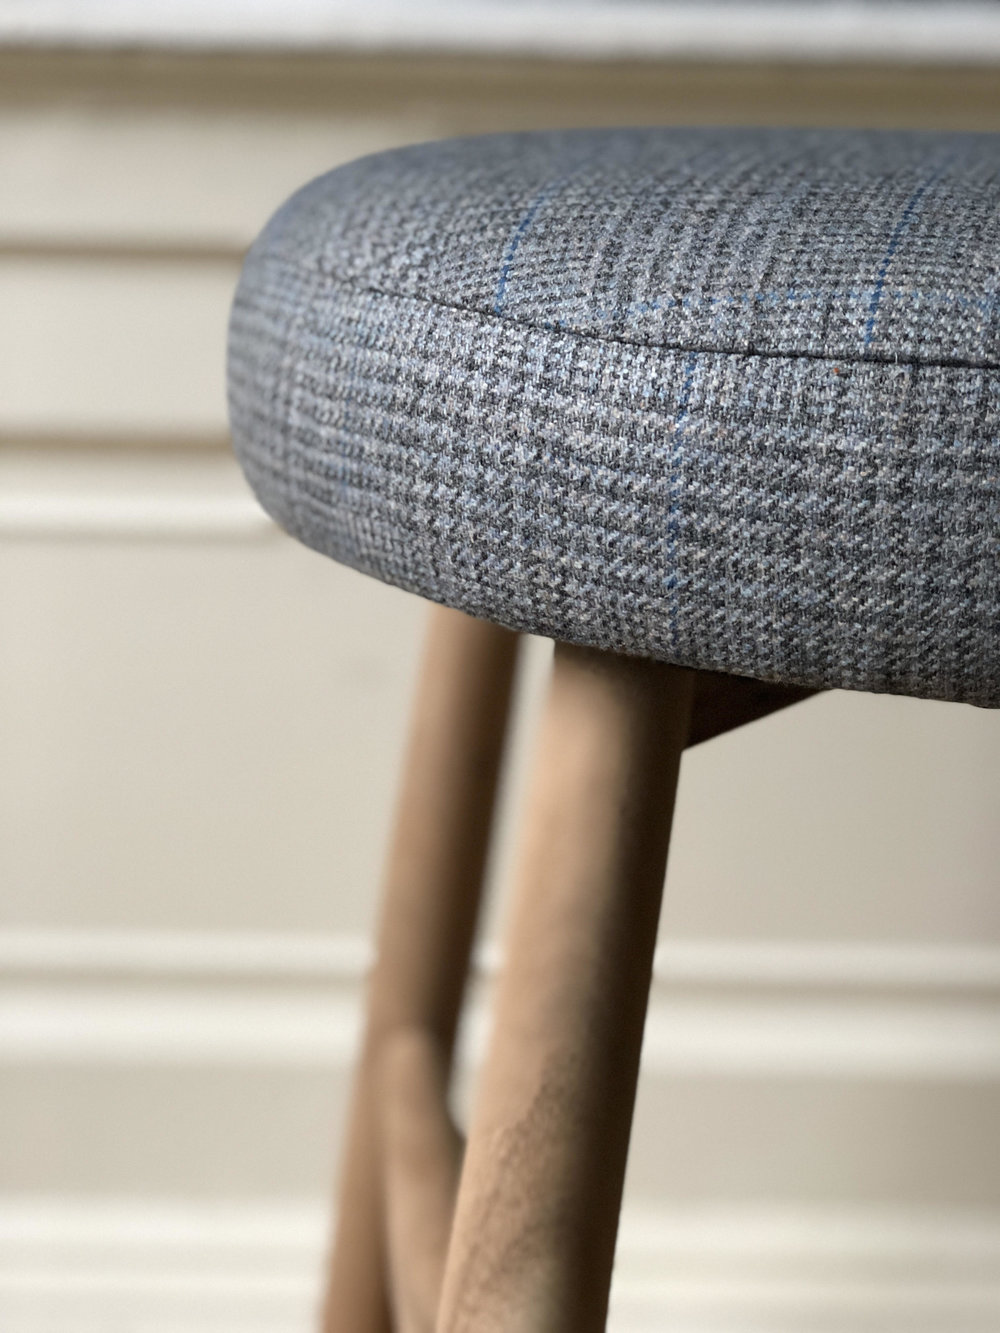 dreich stool close up 2.jpg